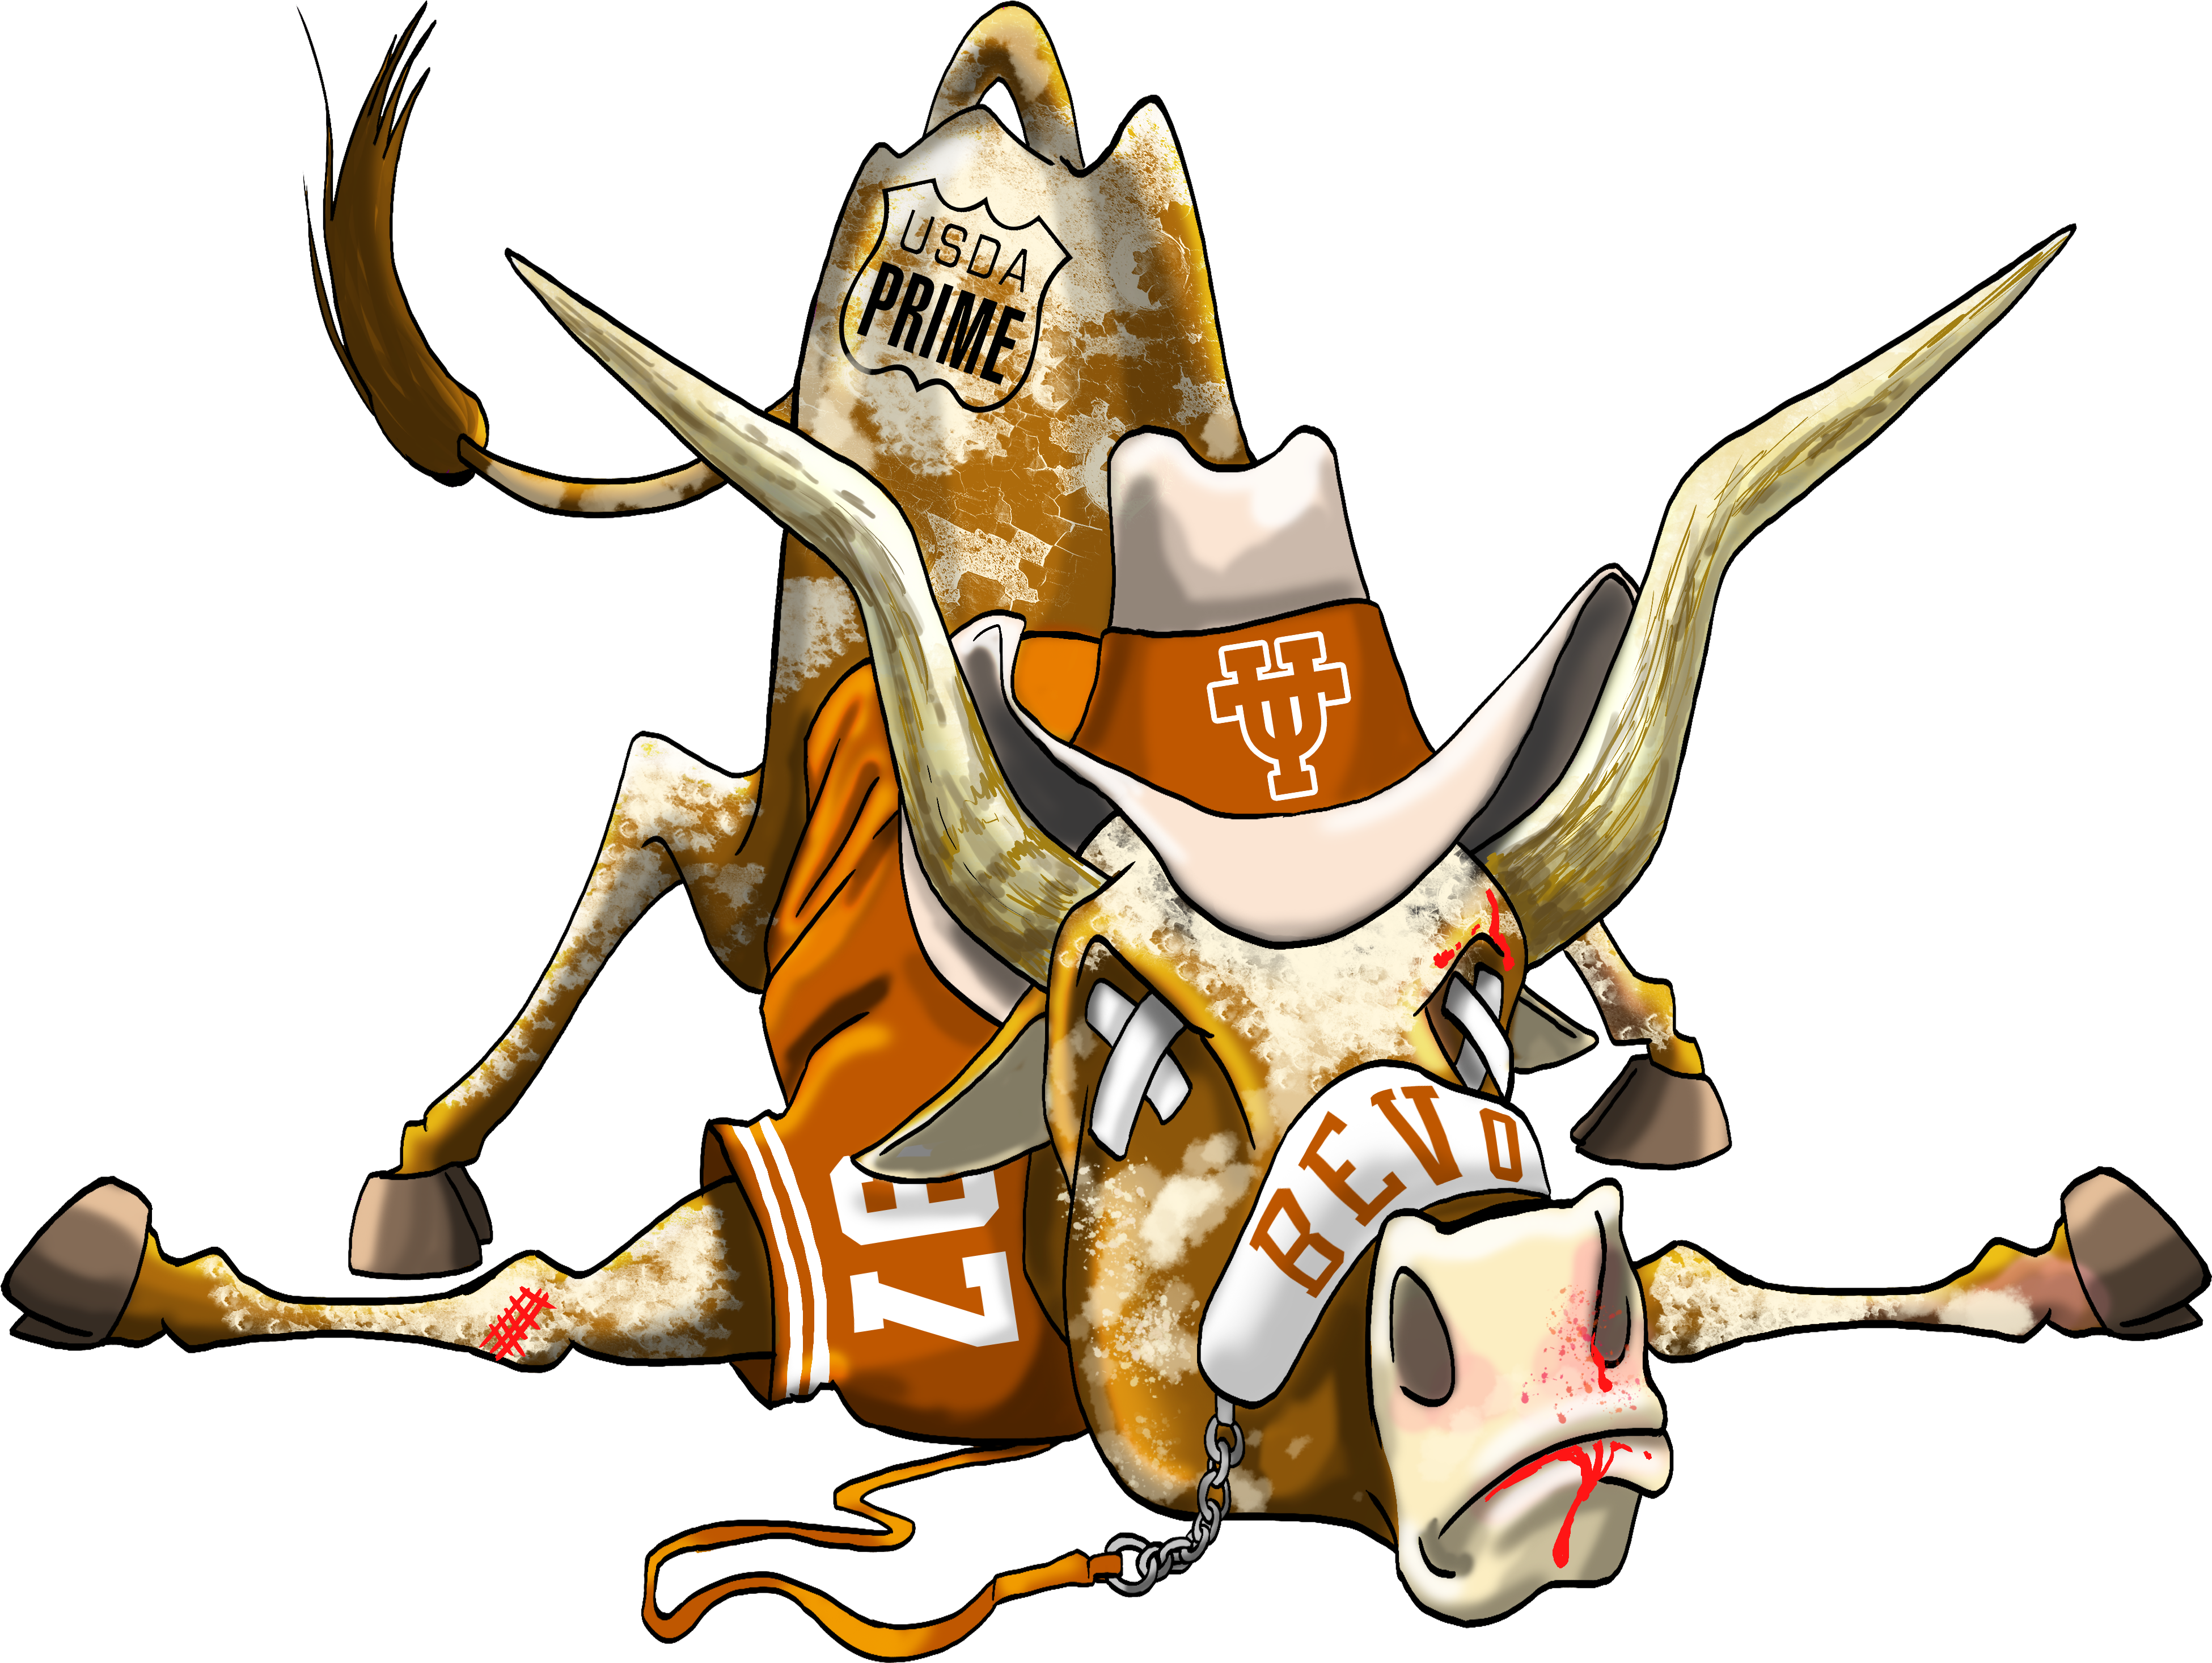 Longhorn clipart illustration. Defeated texas mascot cartoon